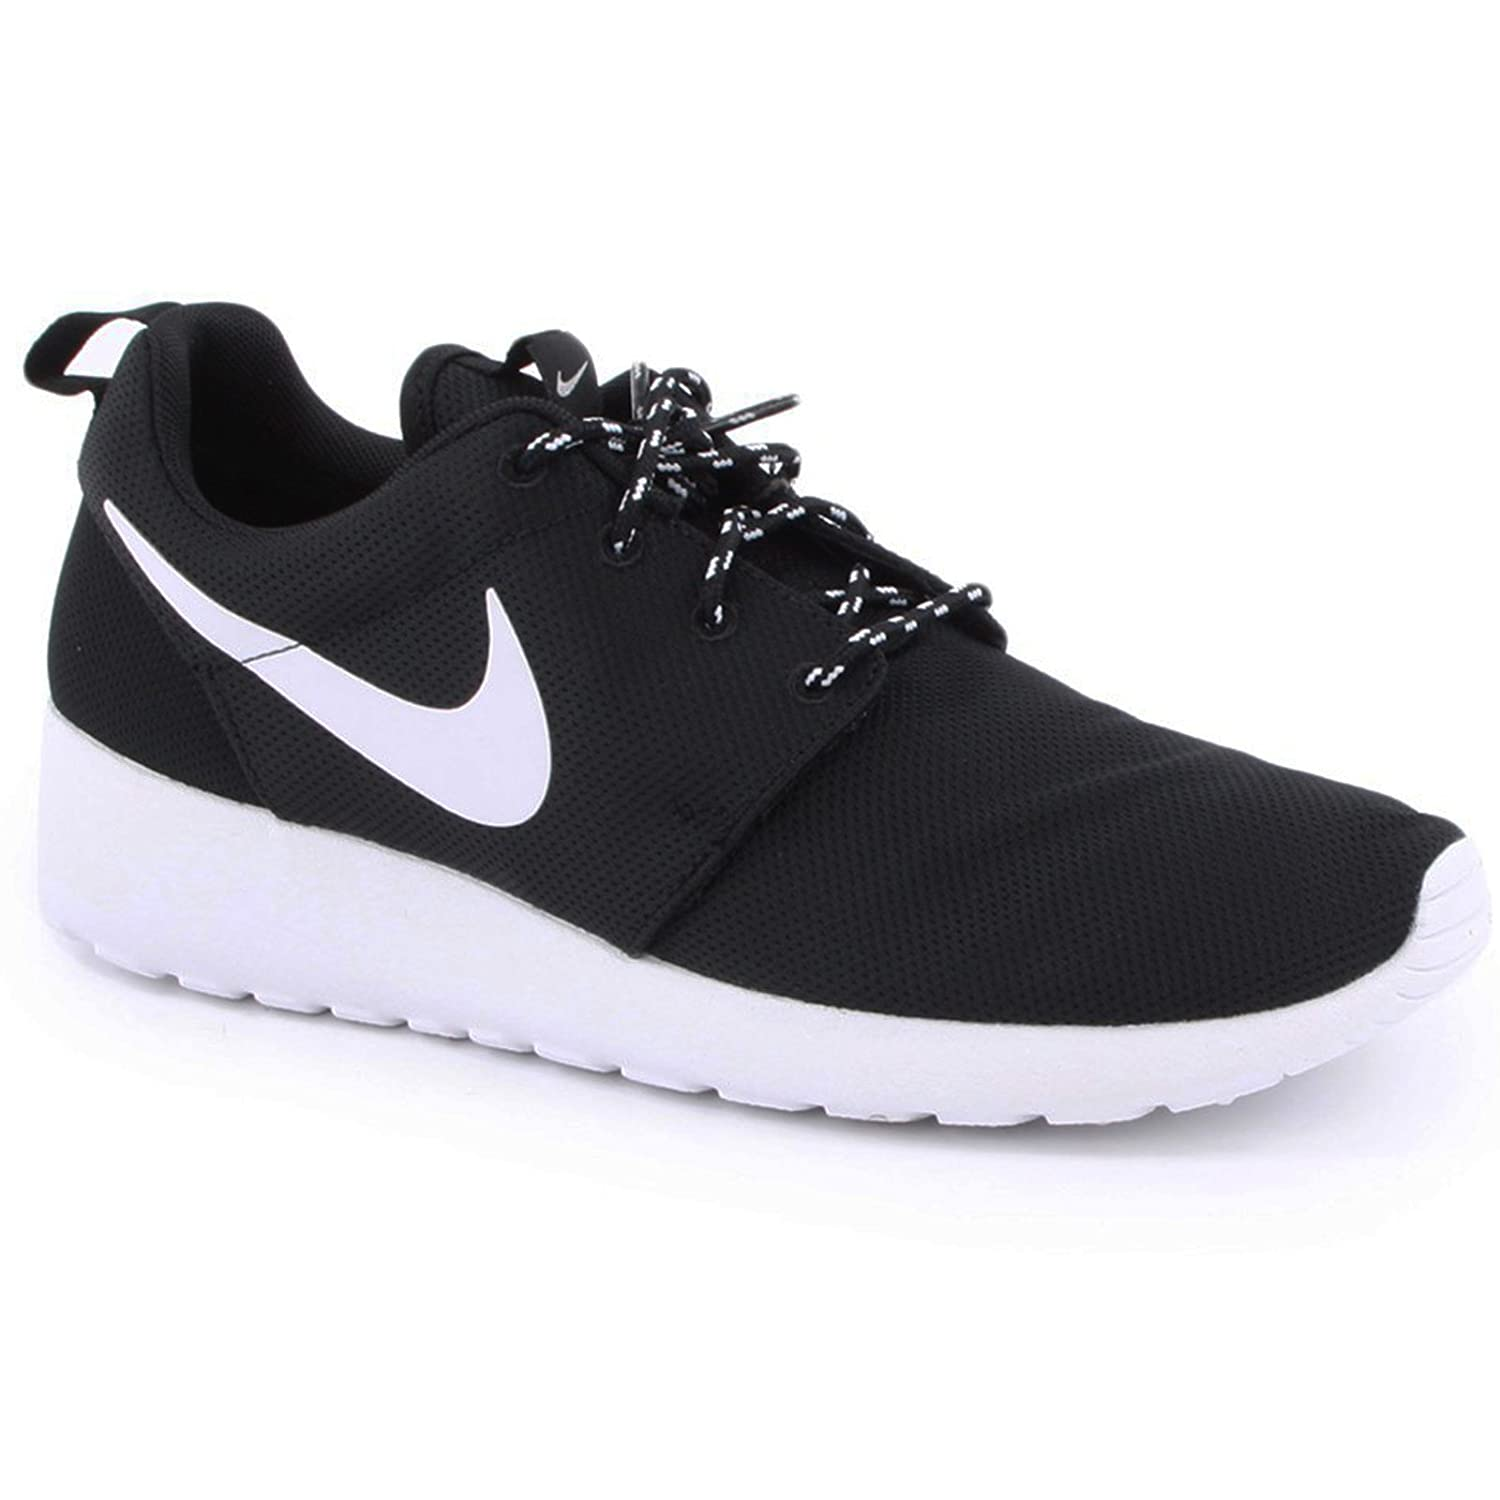 pretty nice 7dc98 452ee Nike Roshe Run Black White Womens Trainers Size 7 UK  Amazon.co.uk  Shoes    Bags